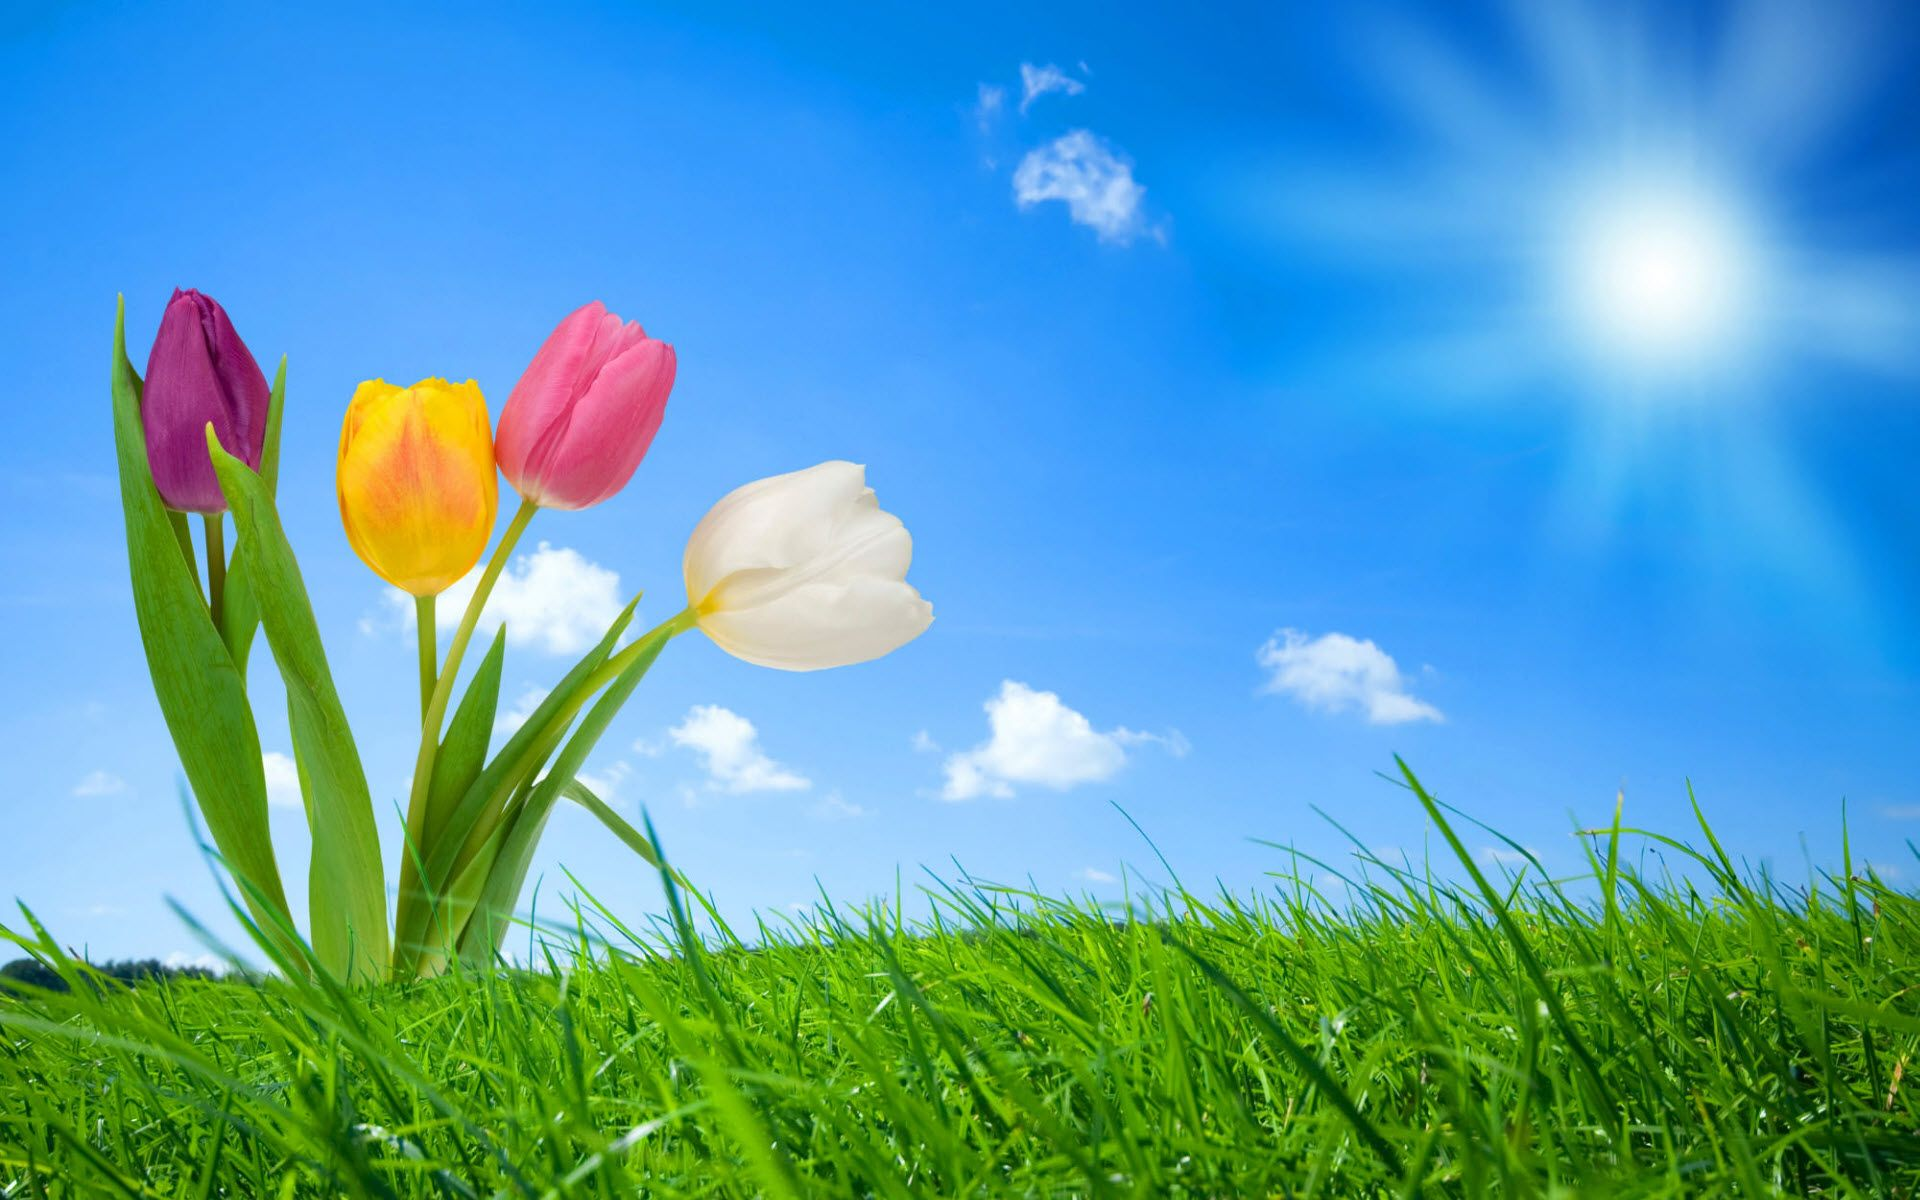 35 Beautiful Spring Pictures And Wallpapers: Free Spring Wallpaper Backgrounds